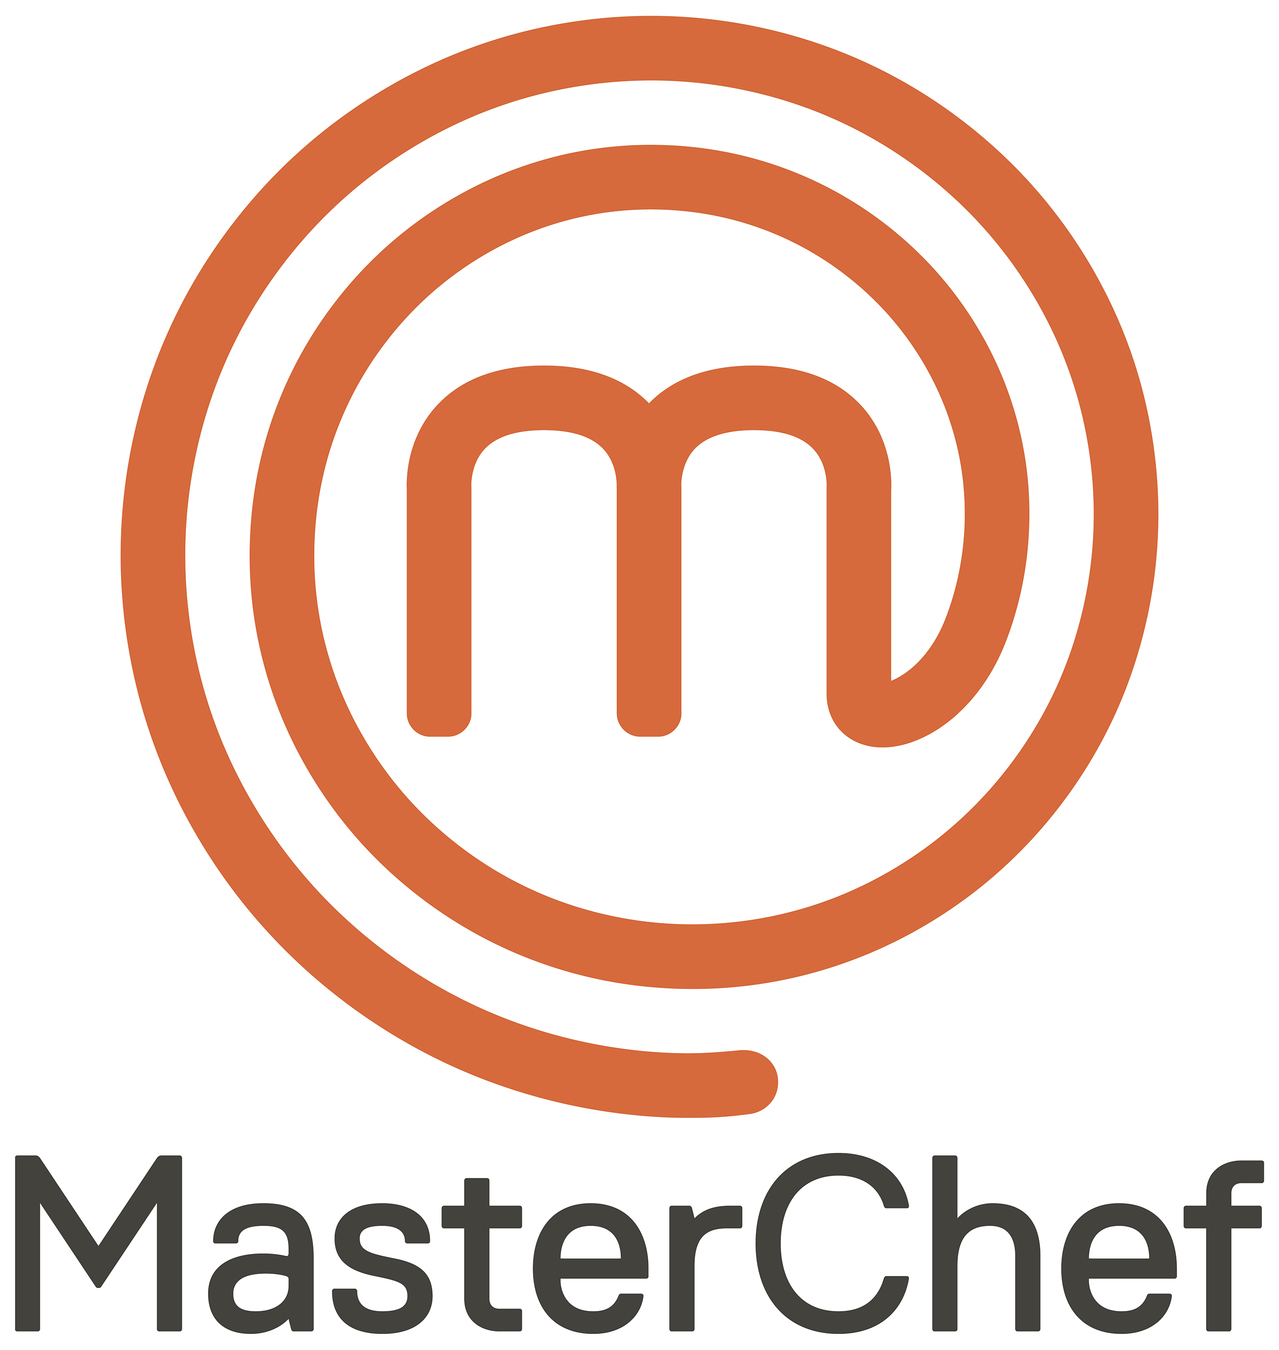 `MasterChef` (FOX logo)